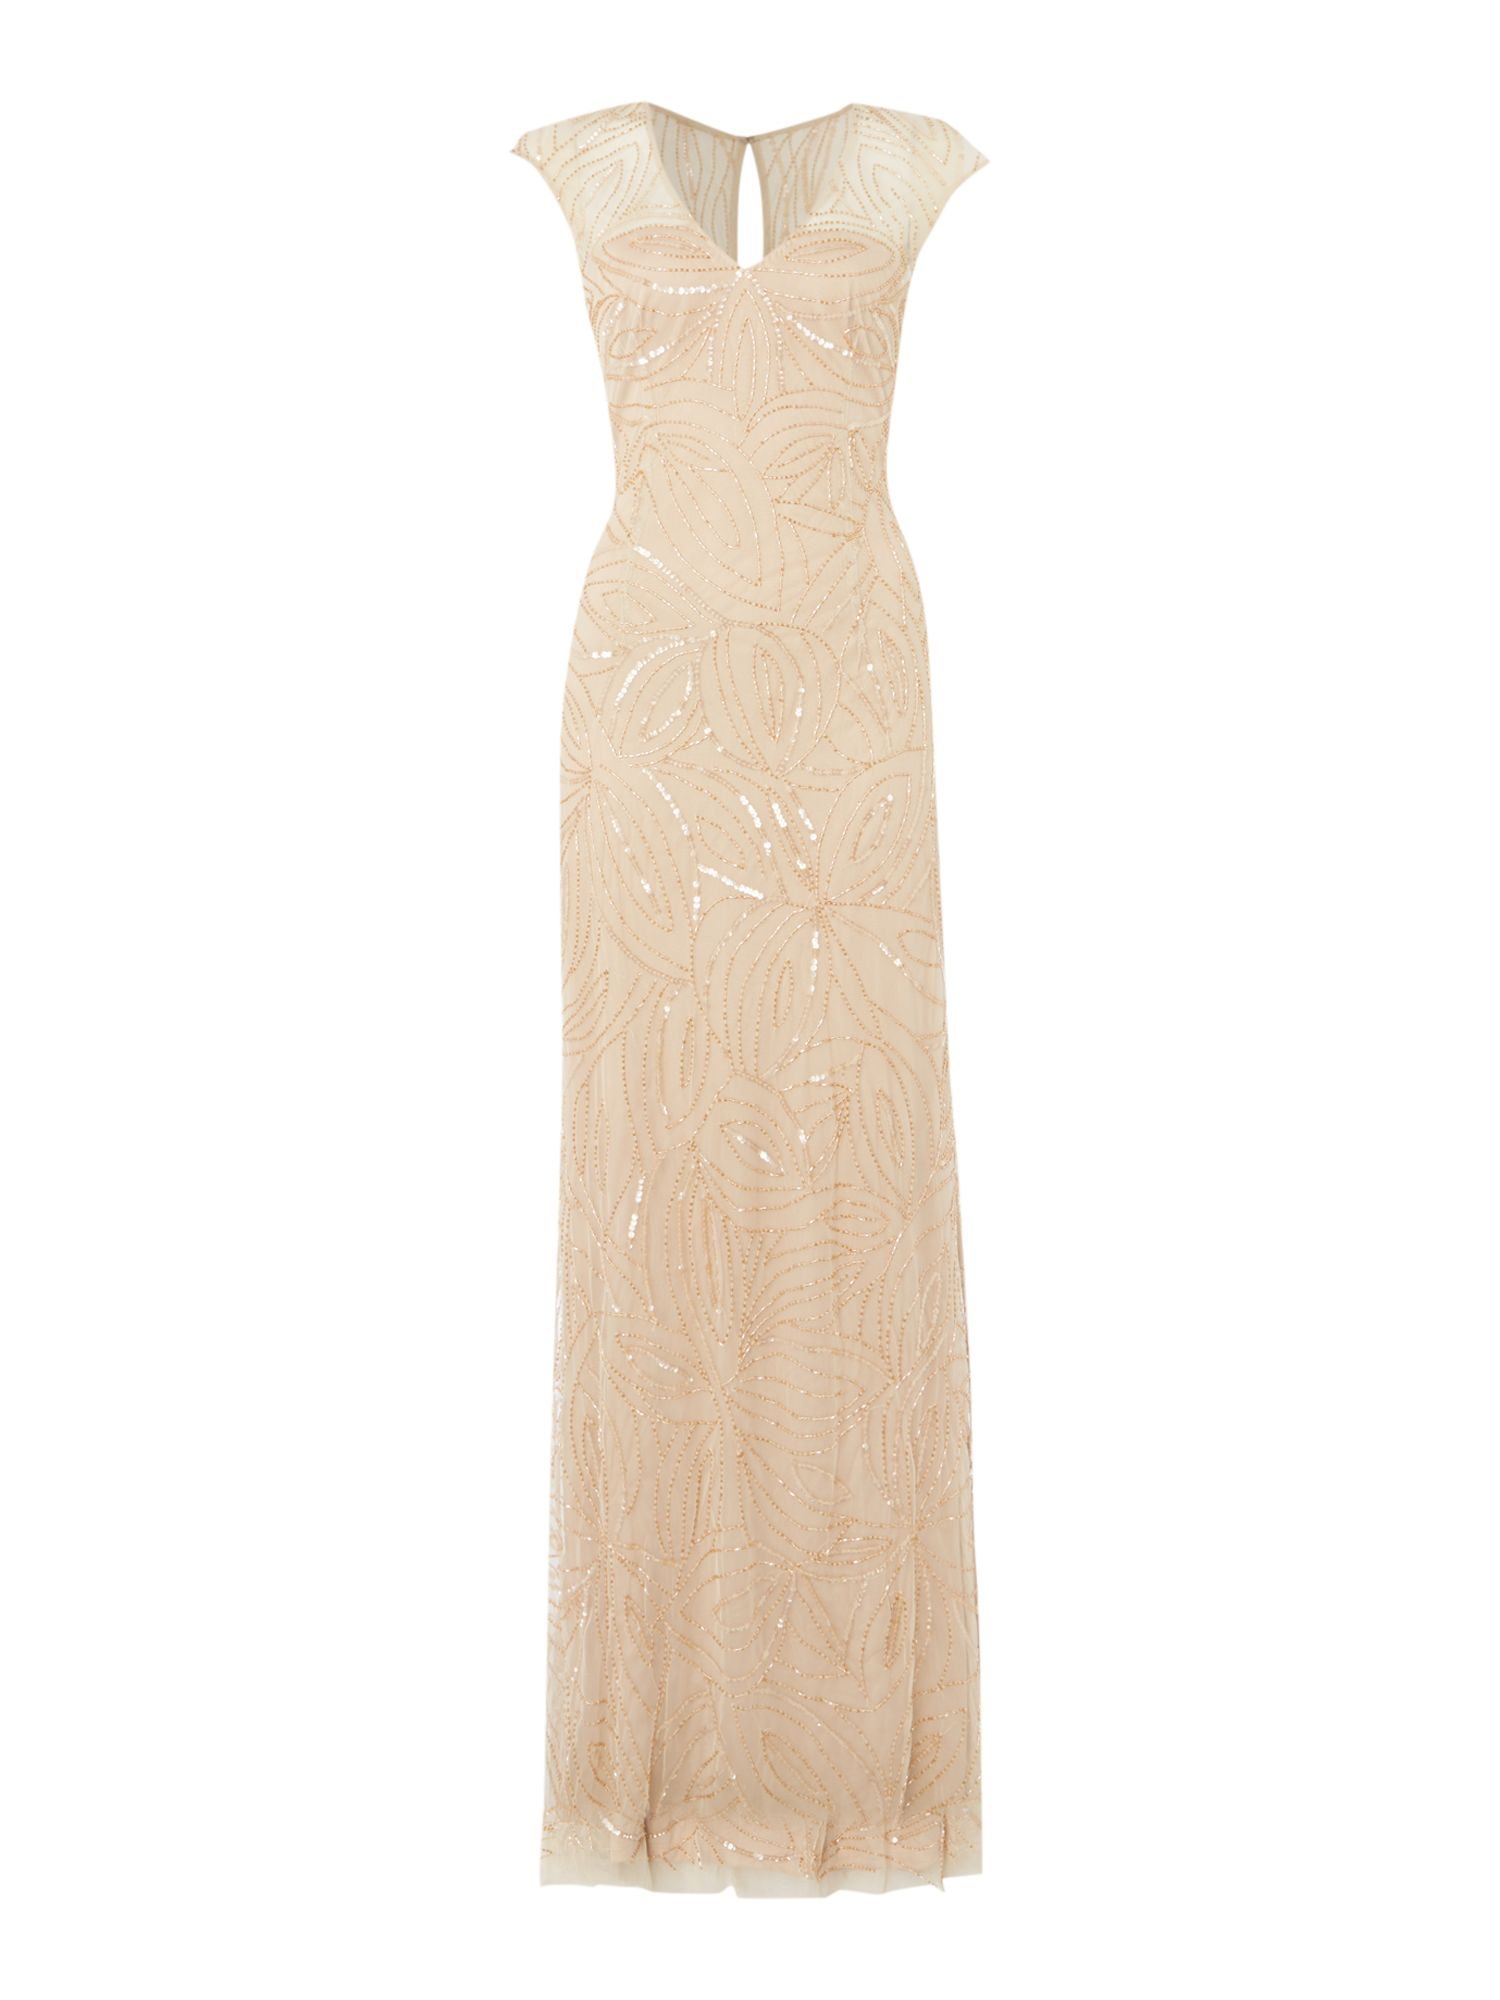 JS Collections Beaded cap sleeve dress, Gold